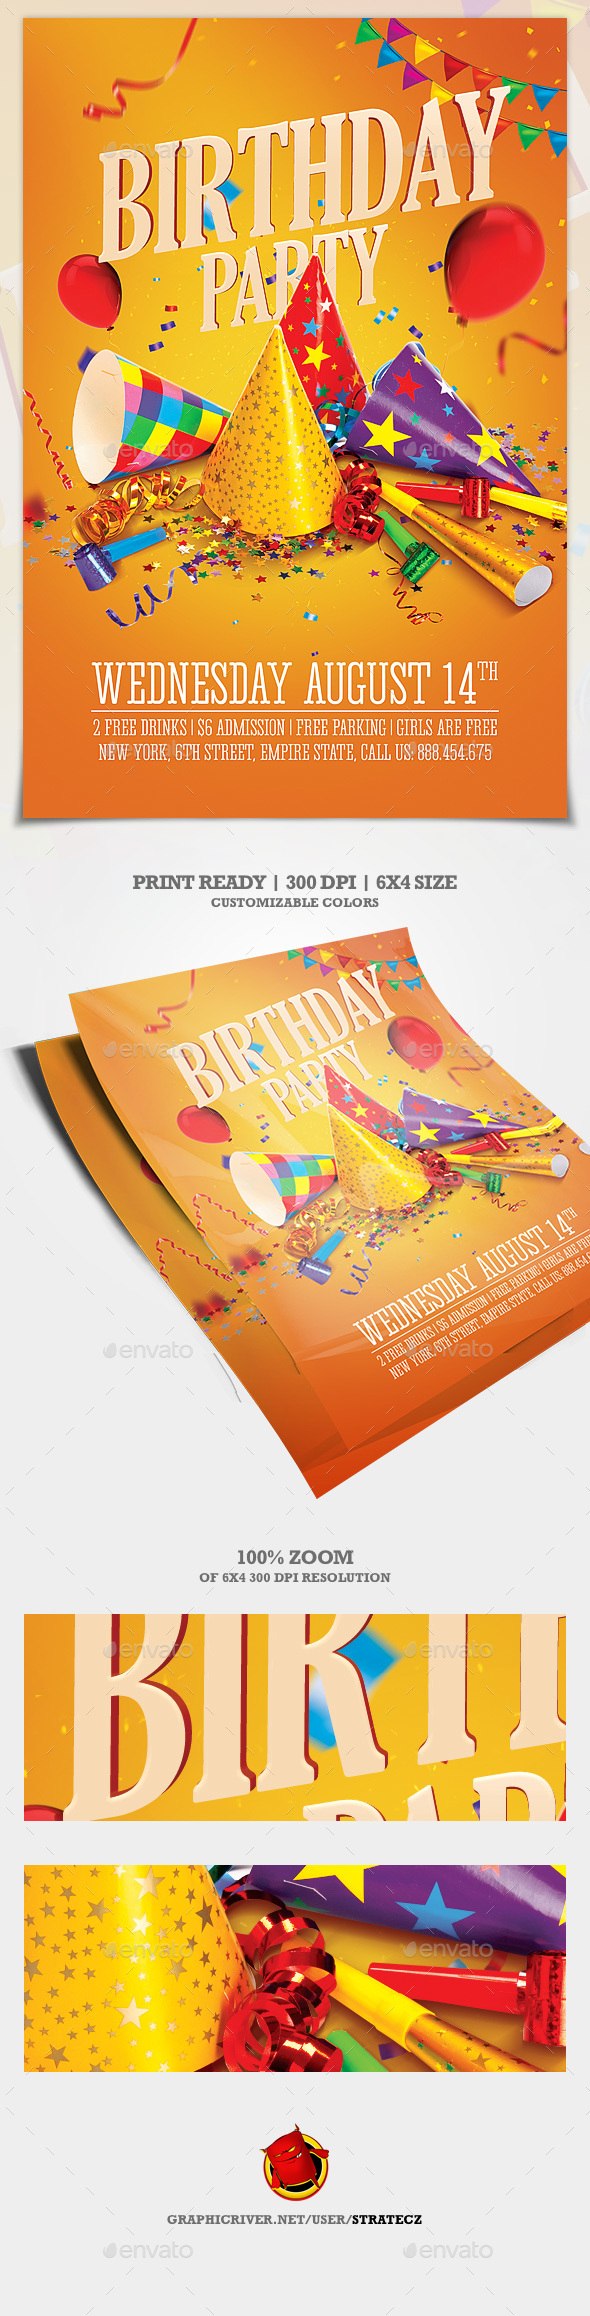 Birthday Party Flyer - Print Templates